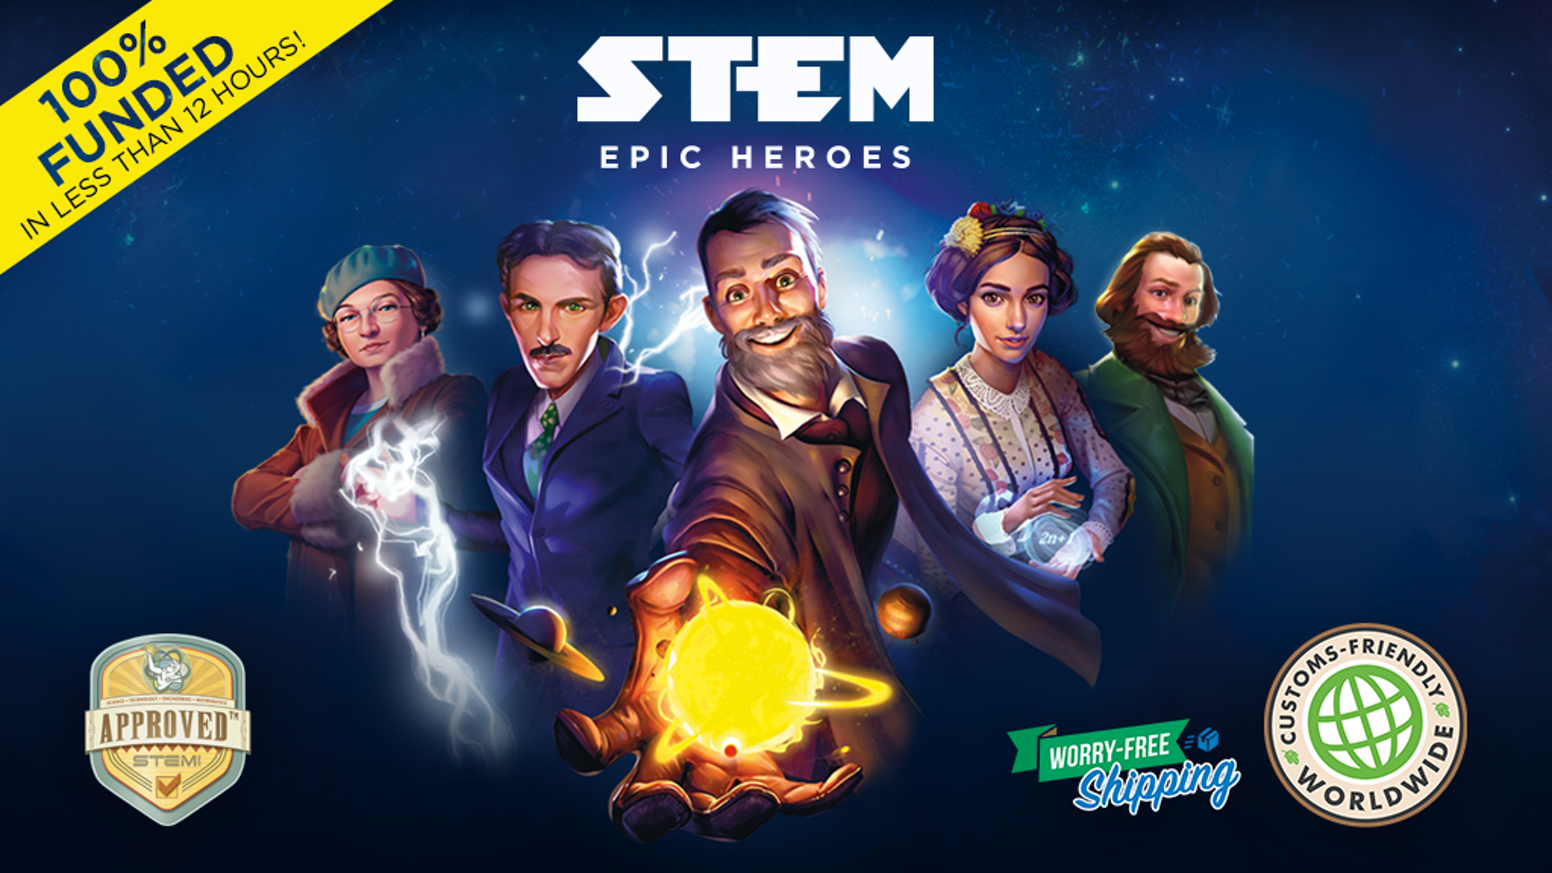 A fun, simple, fast-paced card game where you team up with the greatest minds in history in an epic race to make discoveries.